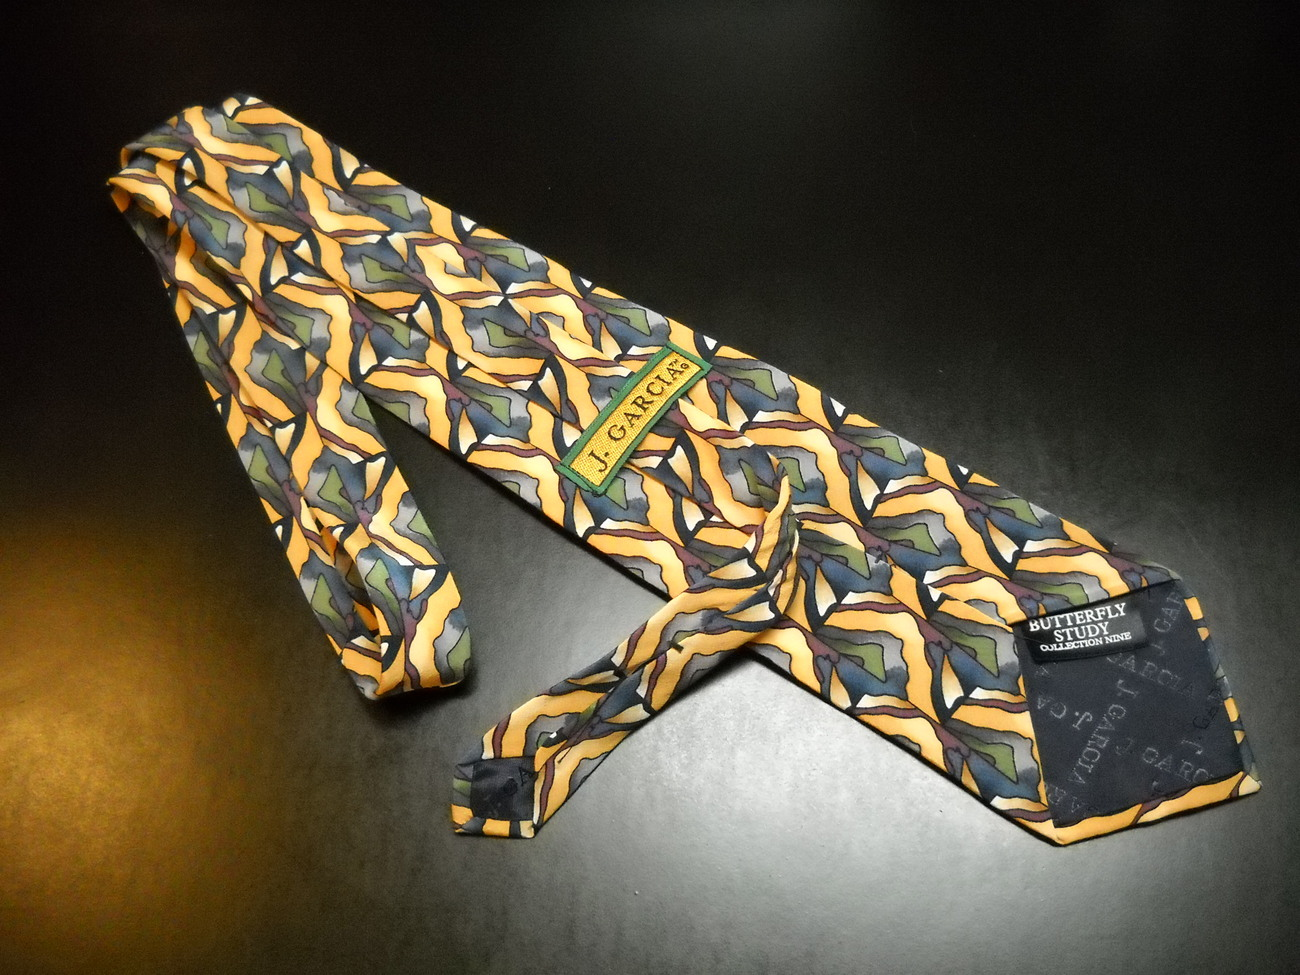 J Garcia Neck Tie Collection 09 Butterfly Study Stonehenge Golds Yellows Blues